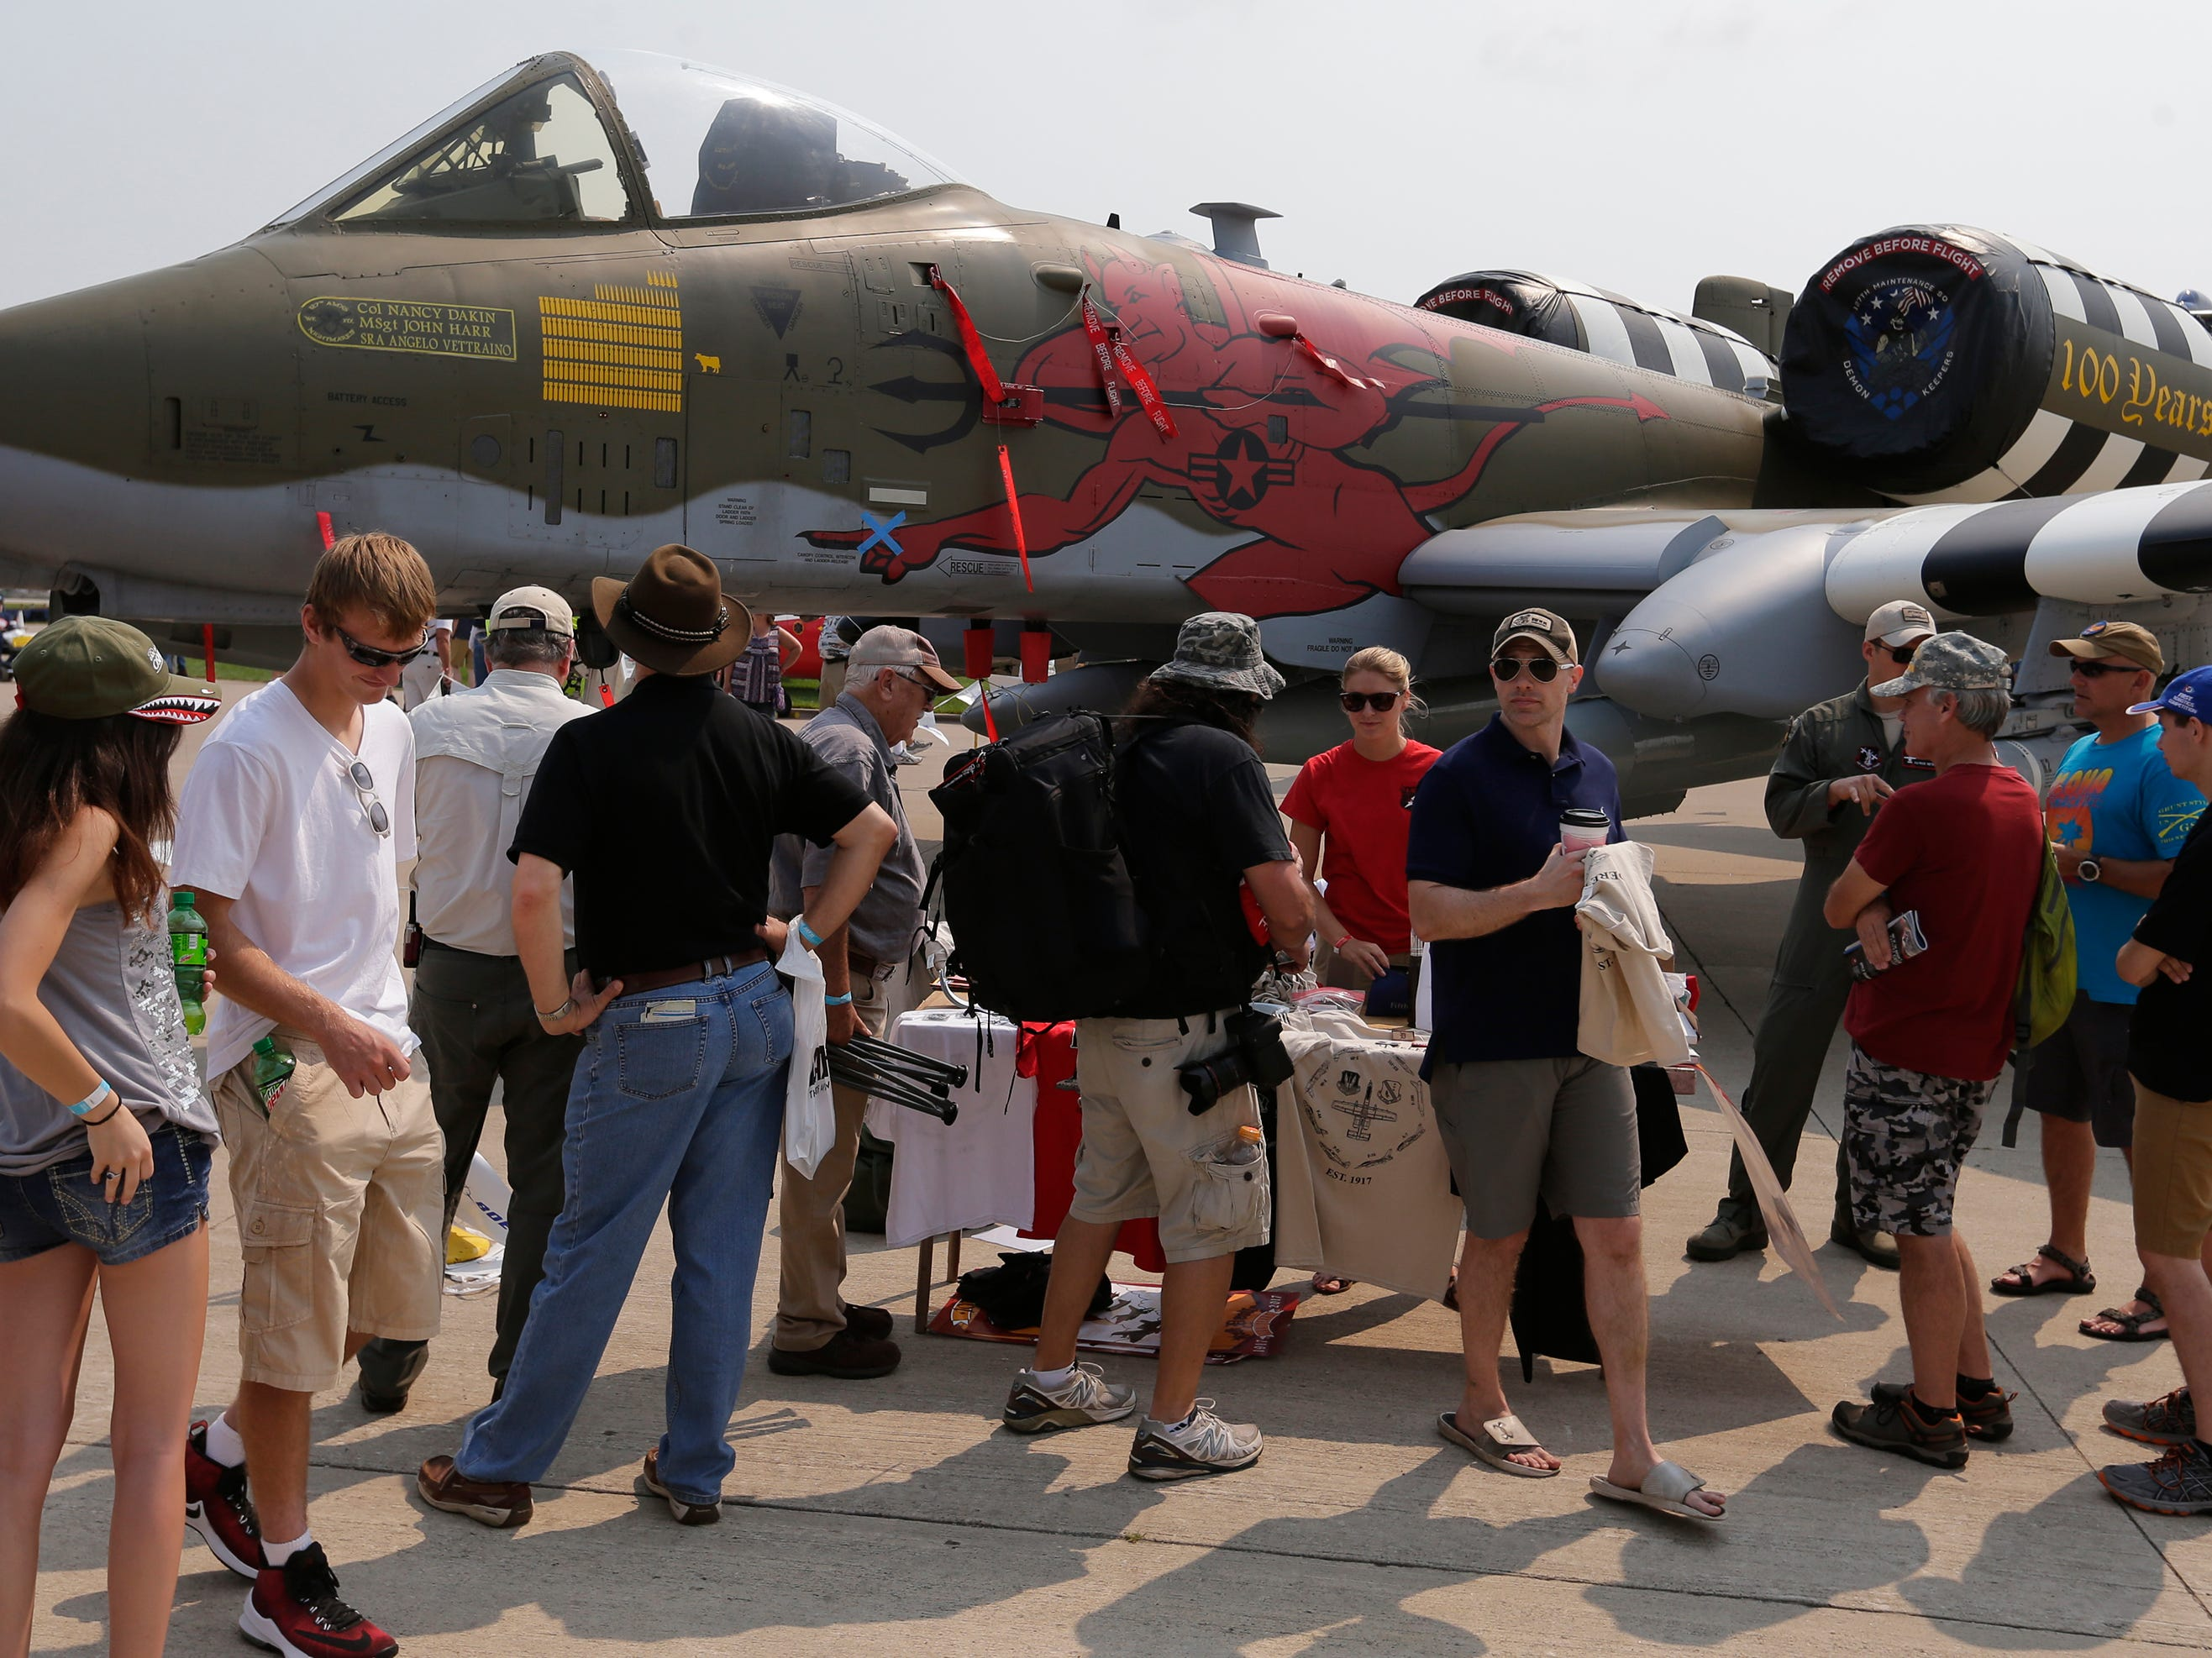 The Michigan A10 was a popular stop for visitors on Boeing Plaza.  The first day of AirVenture 2018 opened on July 21, 2018.  Thousands of people will pass through the gates of AirVenture.